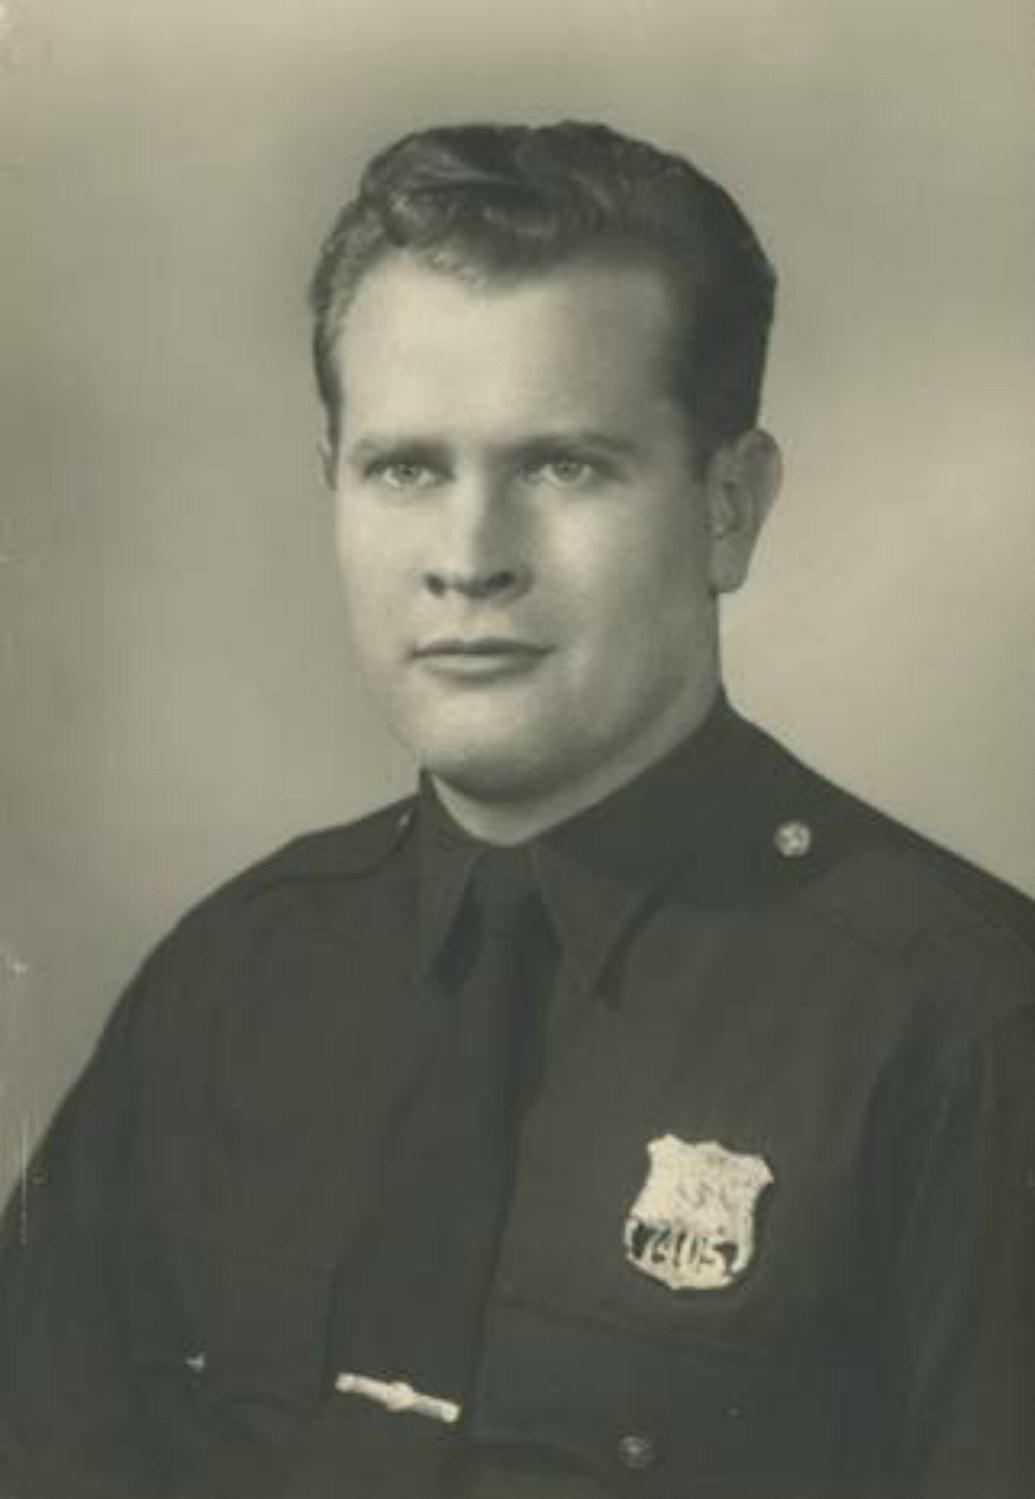 Alfred Klages was a retired member of the NYPD's elite Emergency Services unit.